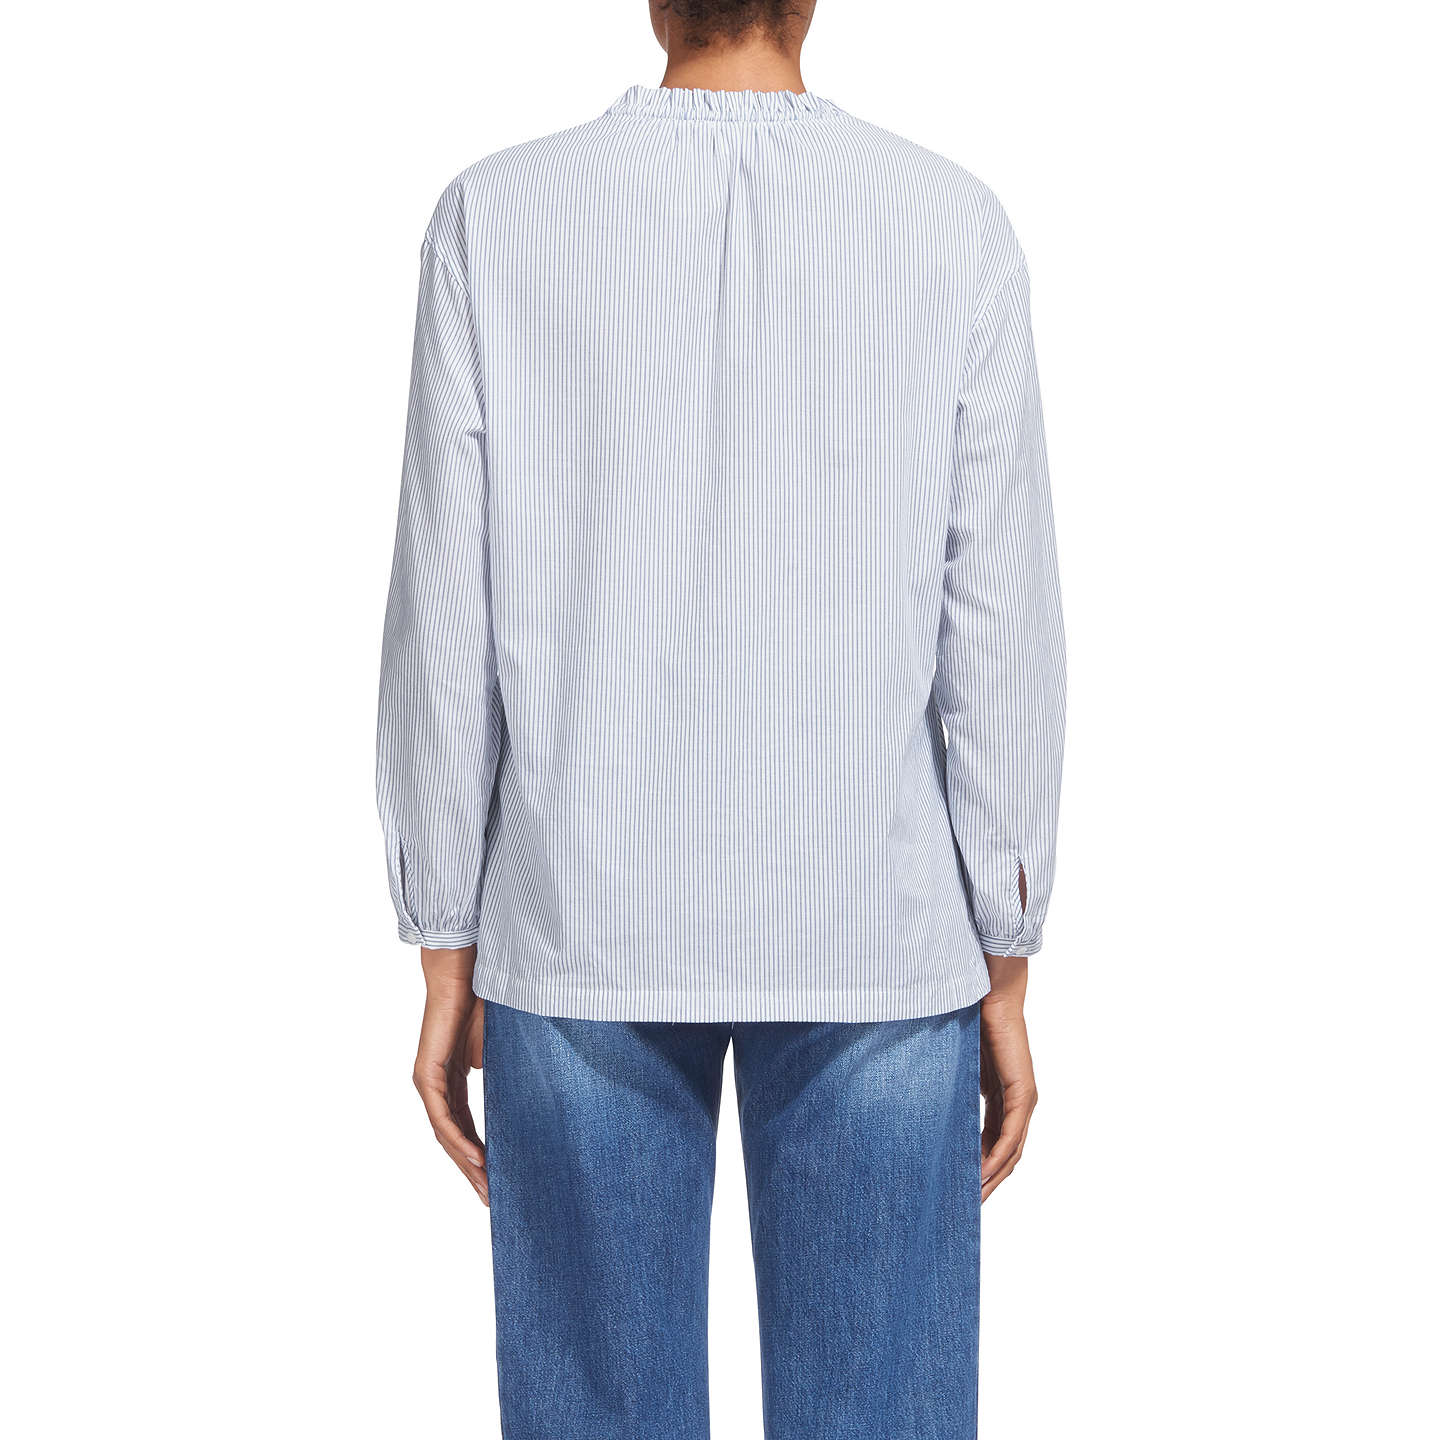 BuyWhistles Relaxed Stripe Tie Neck Blouse, Blue/White, 6 Online at johnlewis.com